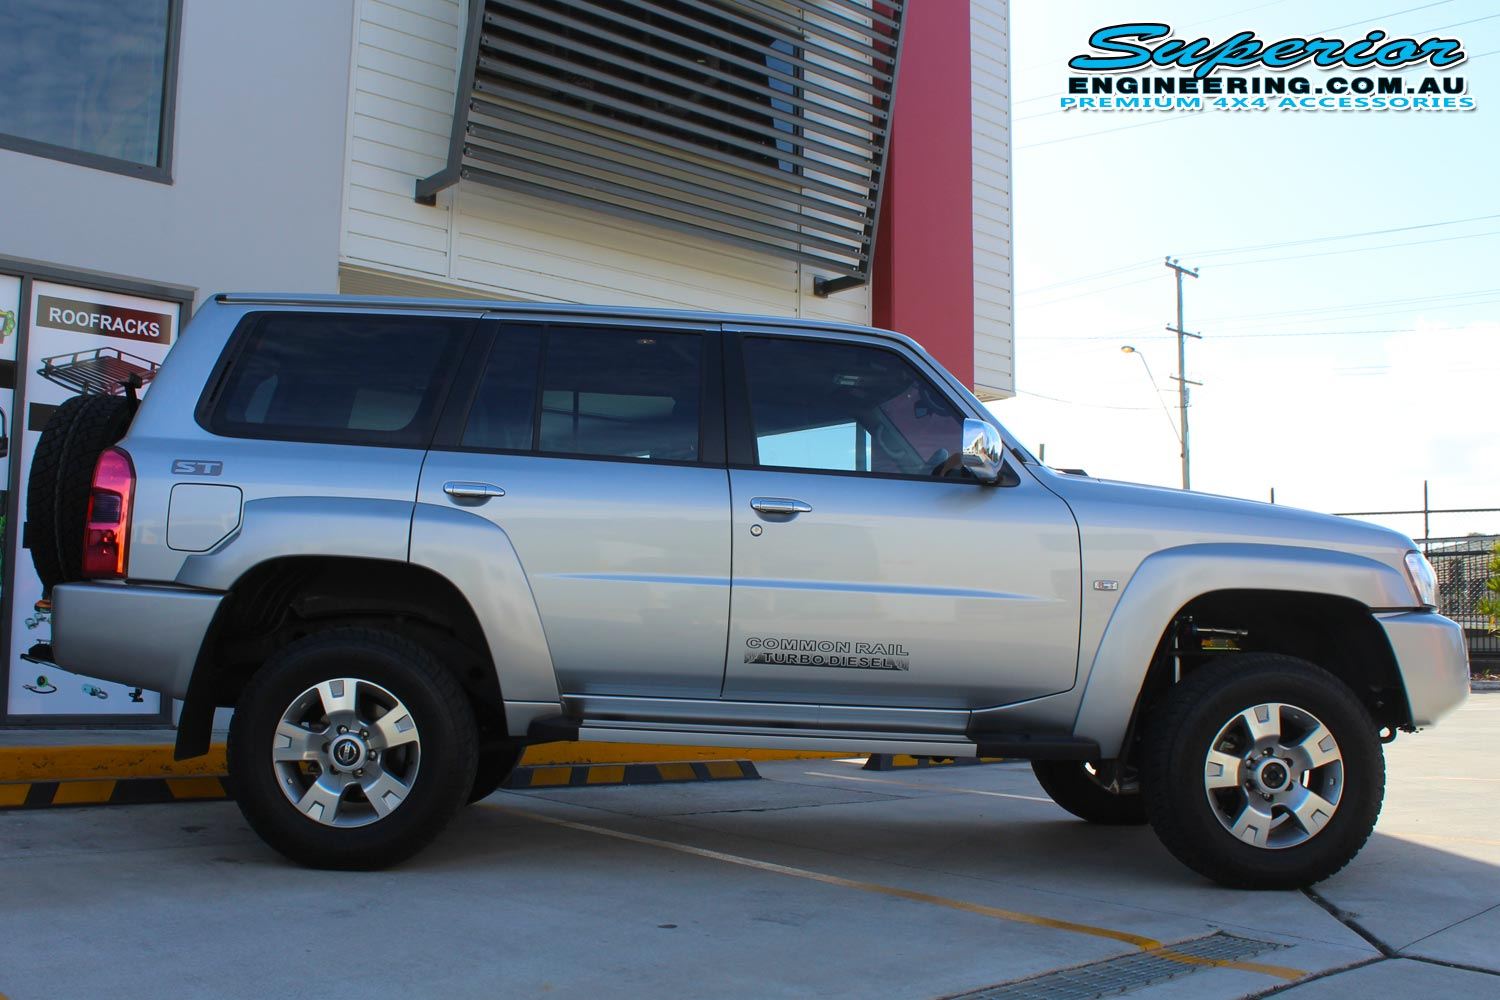 Right side view of a silver GU Nissan Patrol wagon fitted with a top of the range 2 inch Superior Remote Reservoir Lift Kit